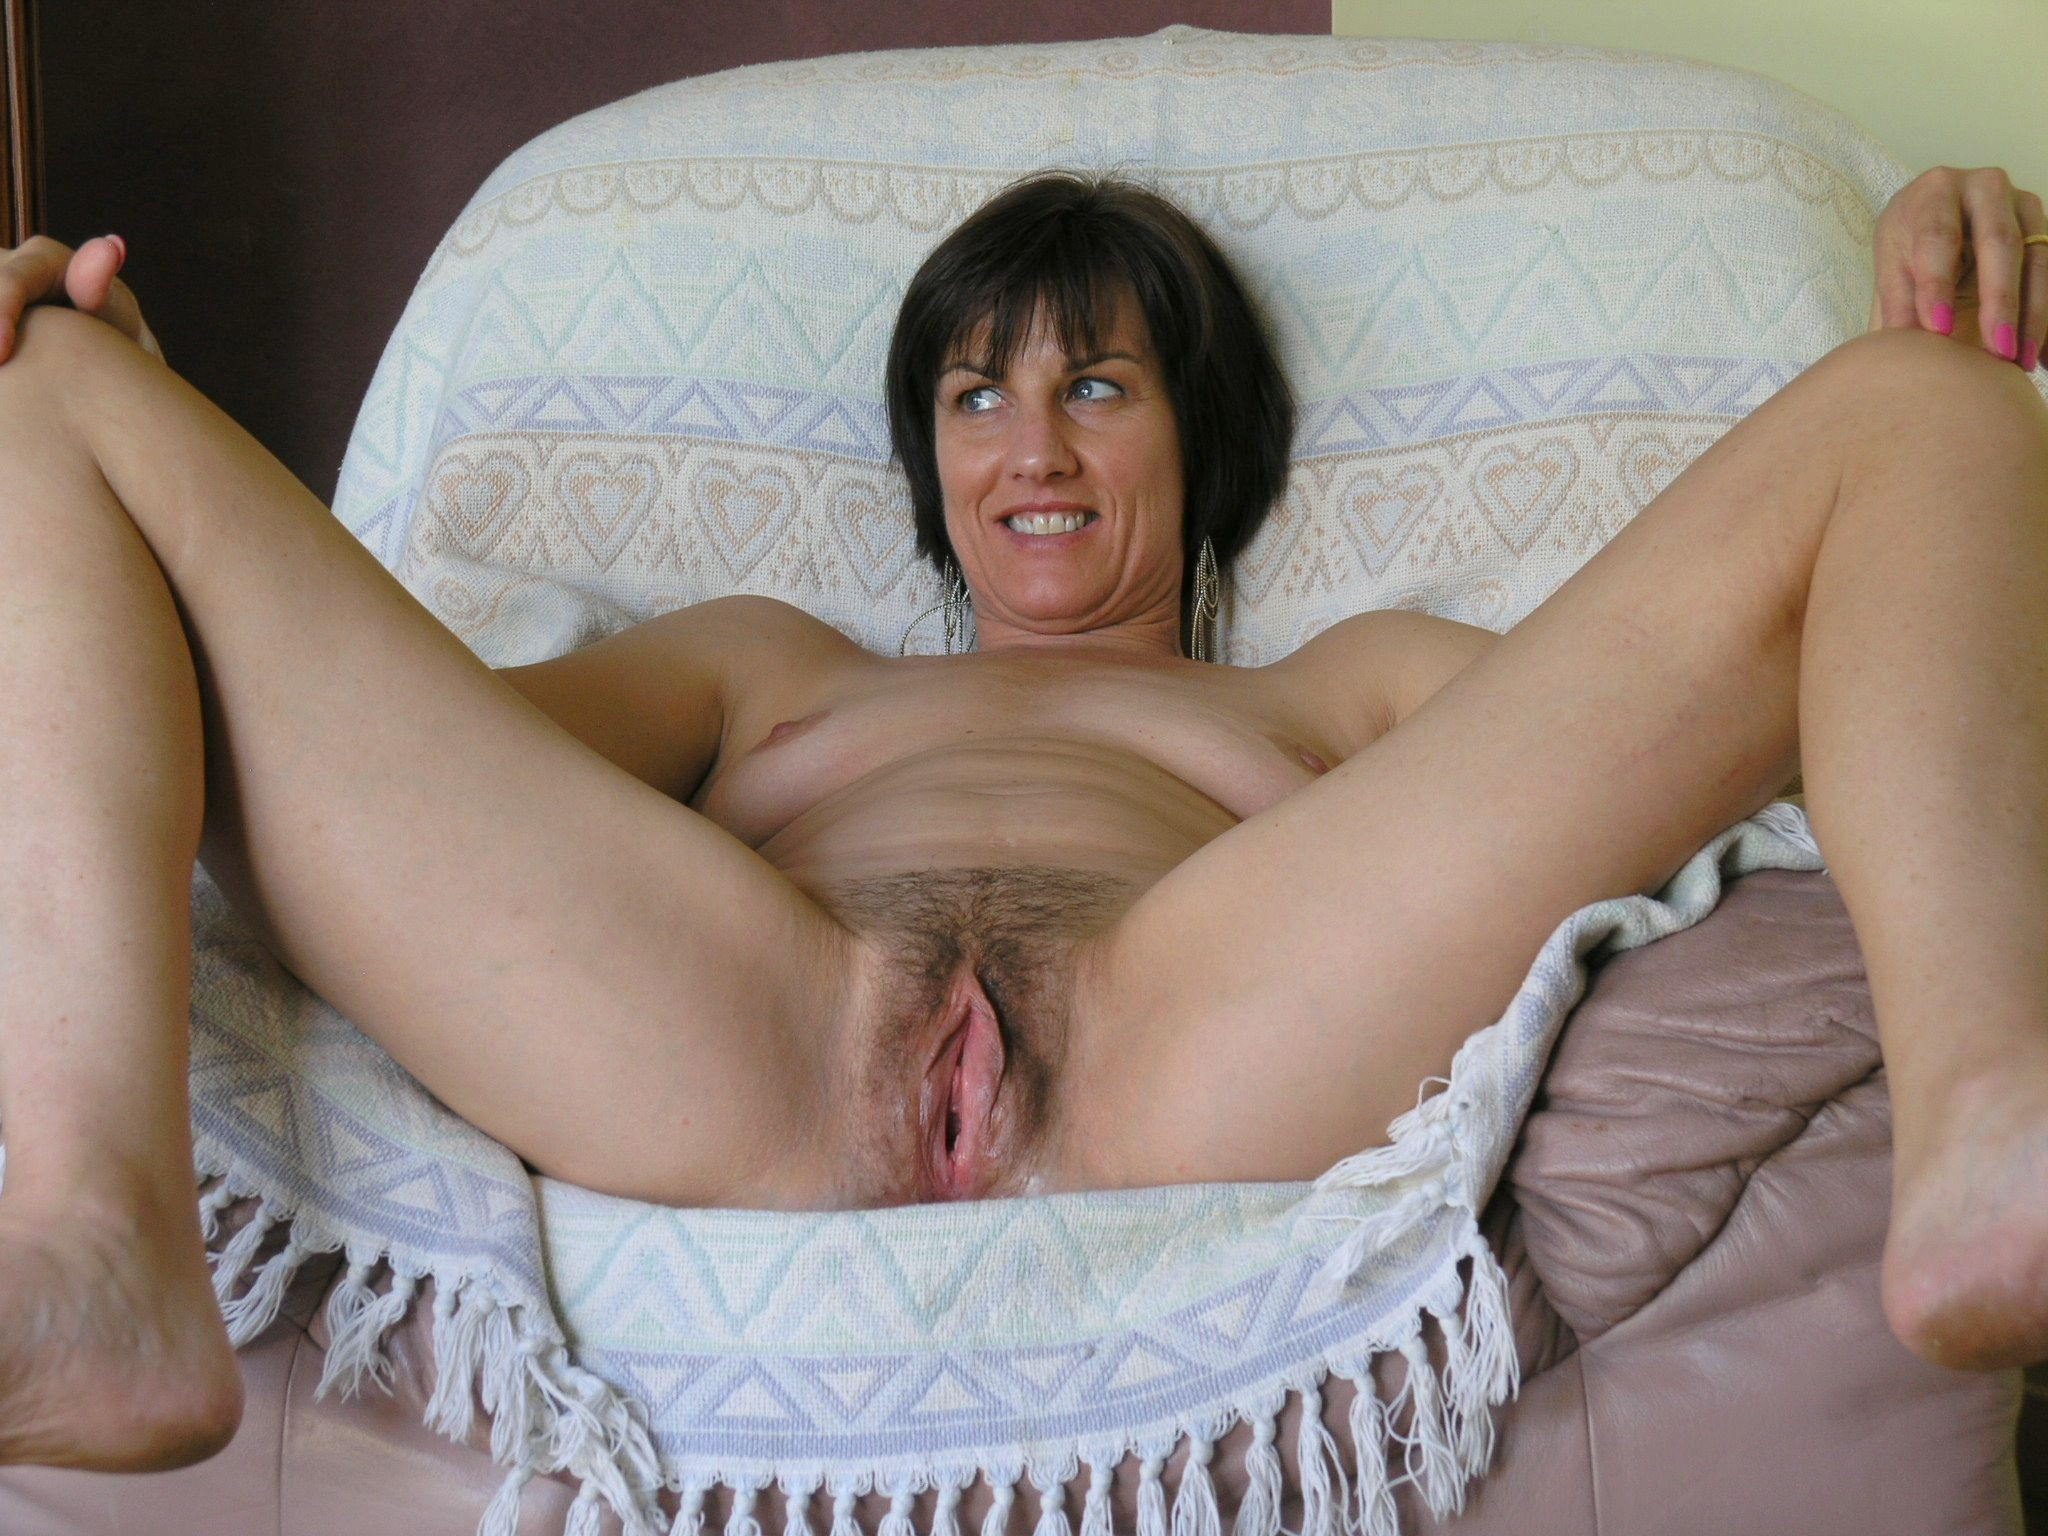 real-housewife-hairy-naked-college-girl-tapes-sex-video